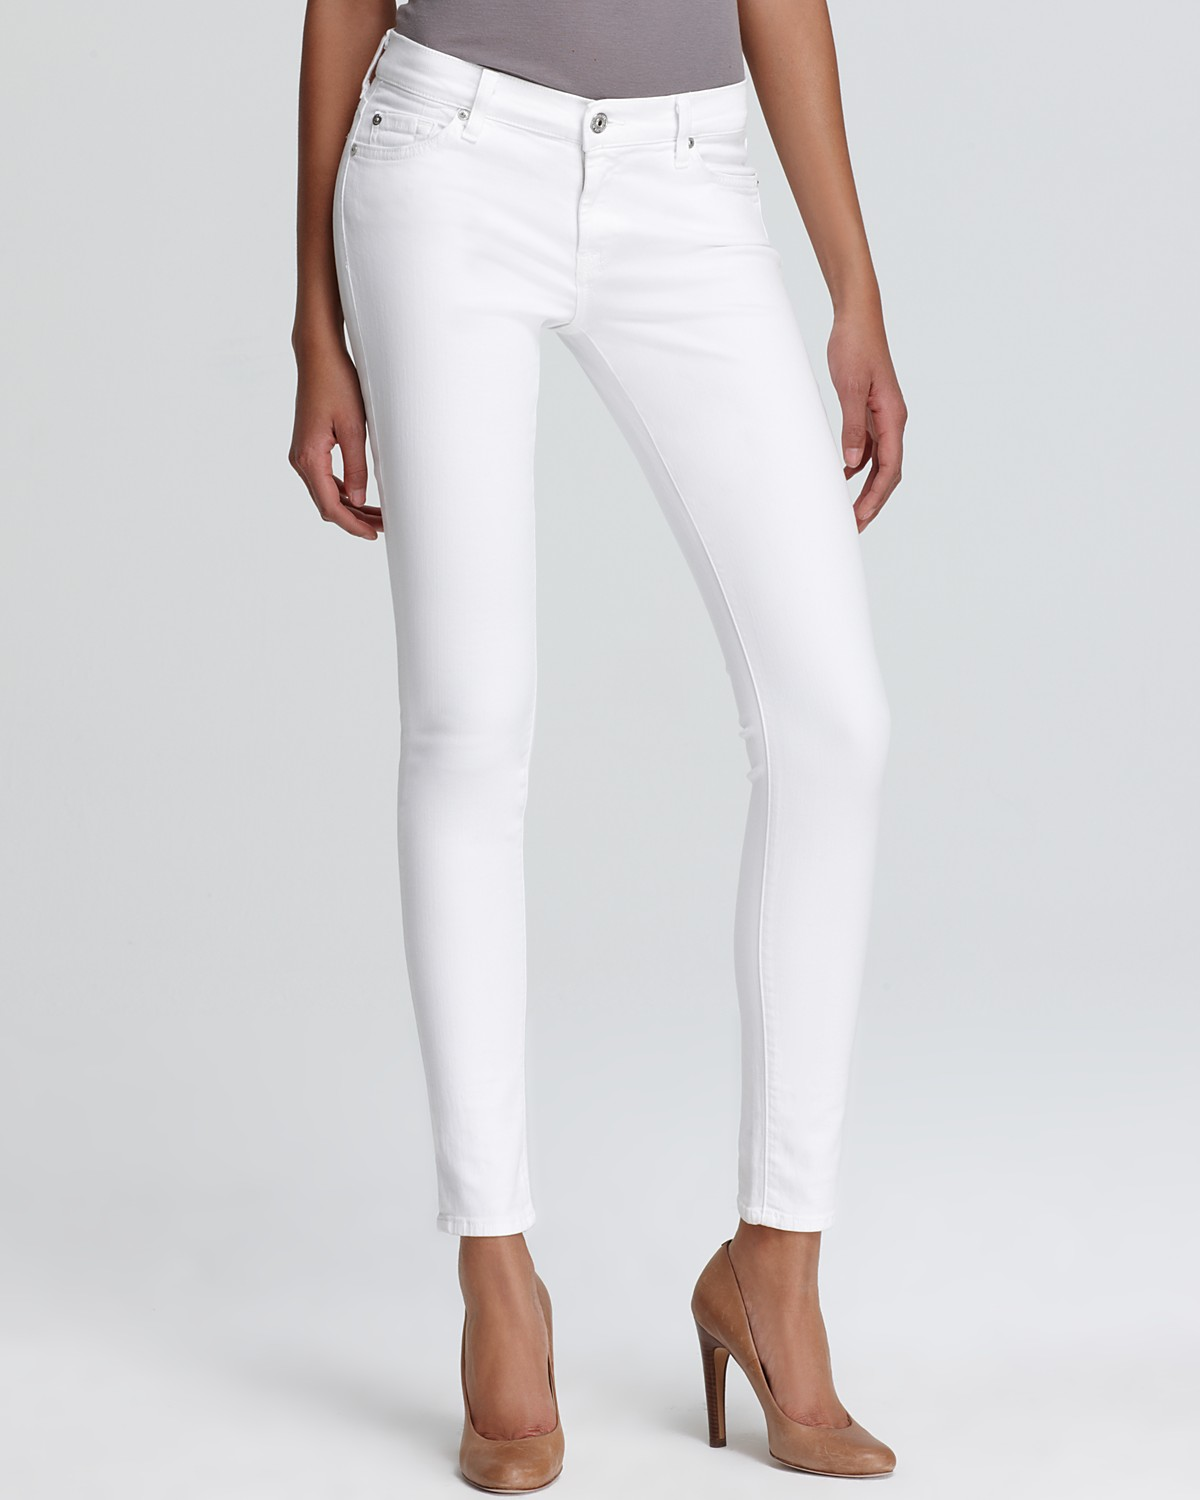 7 For All Mankind Jeans - The Skinny in Stark White | Bloomingdale's